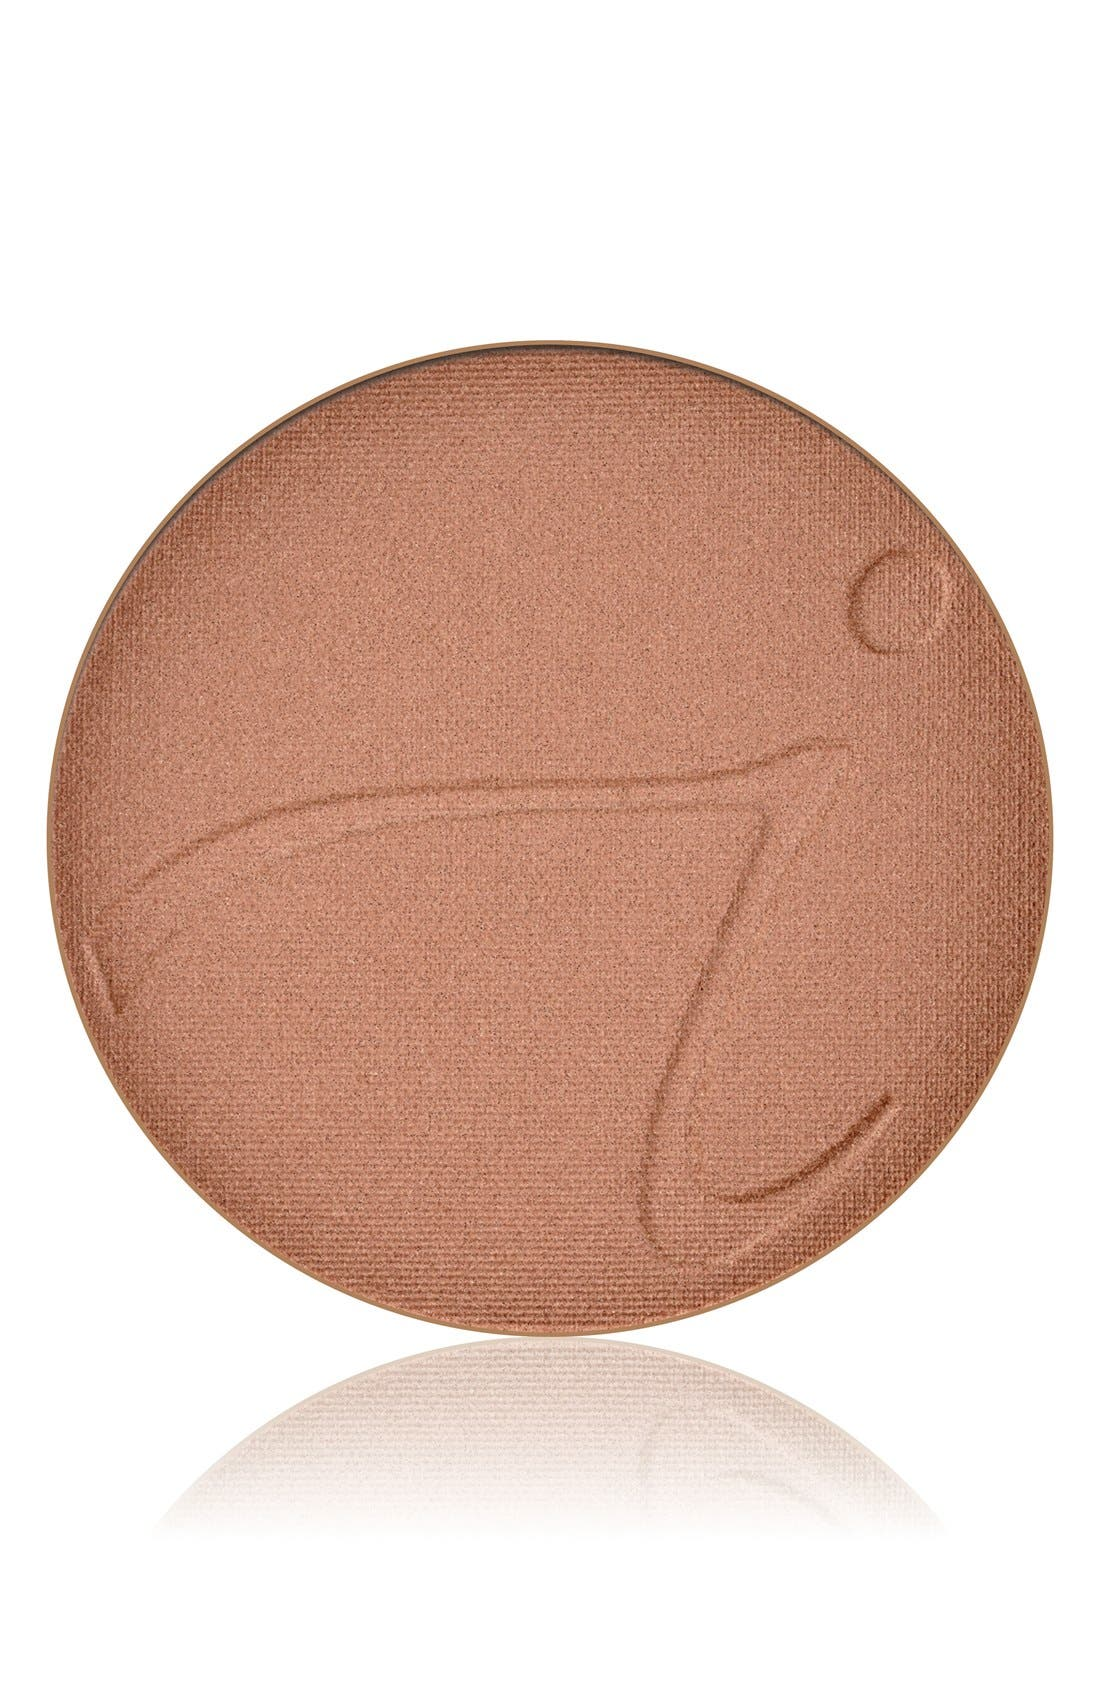 So-Bronze<sup>®</sup> 1 Bronzing Powder Refill,                         Main,                         color, NO COLOR